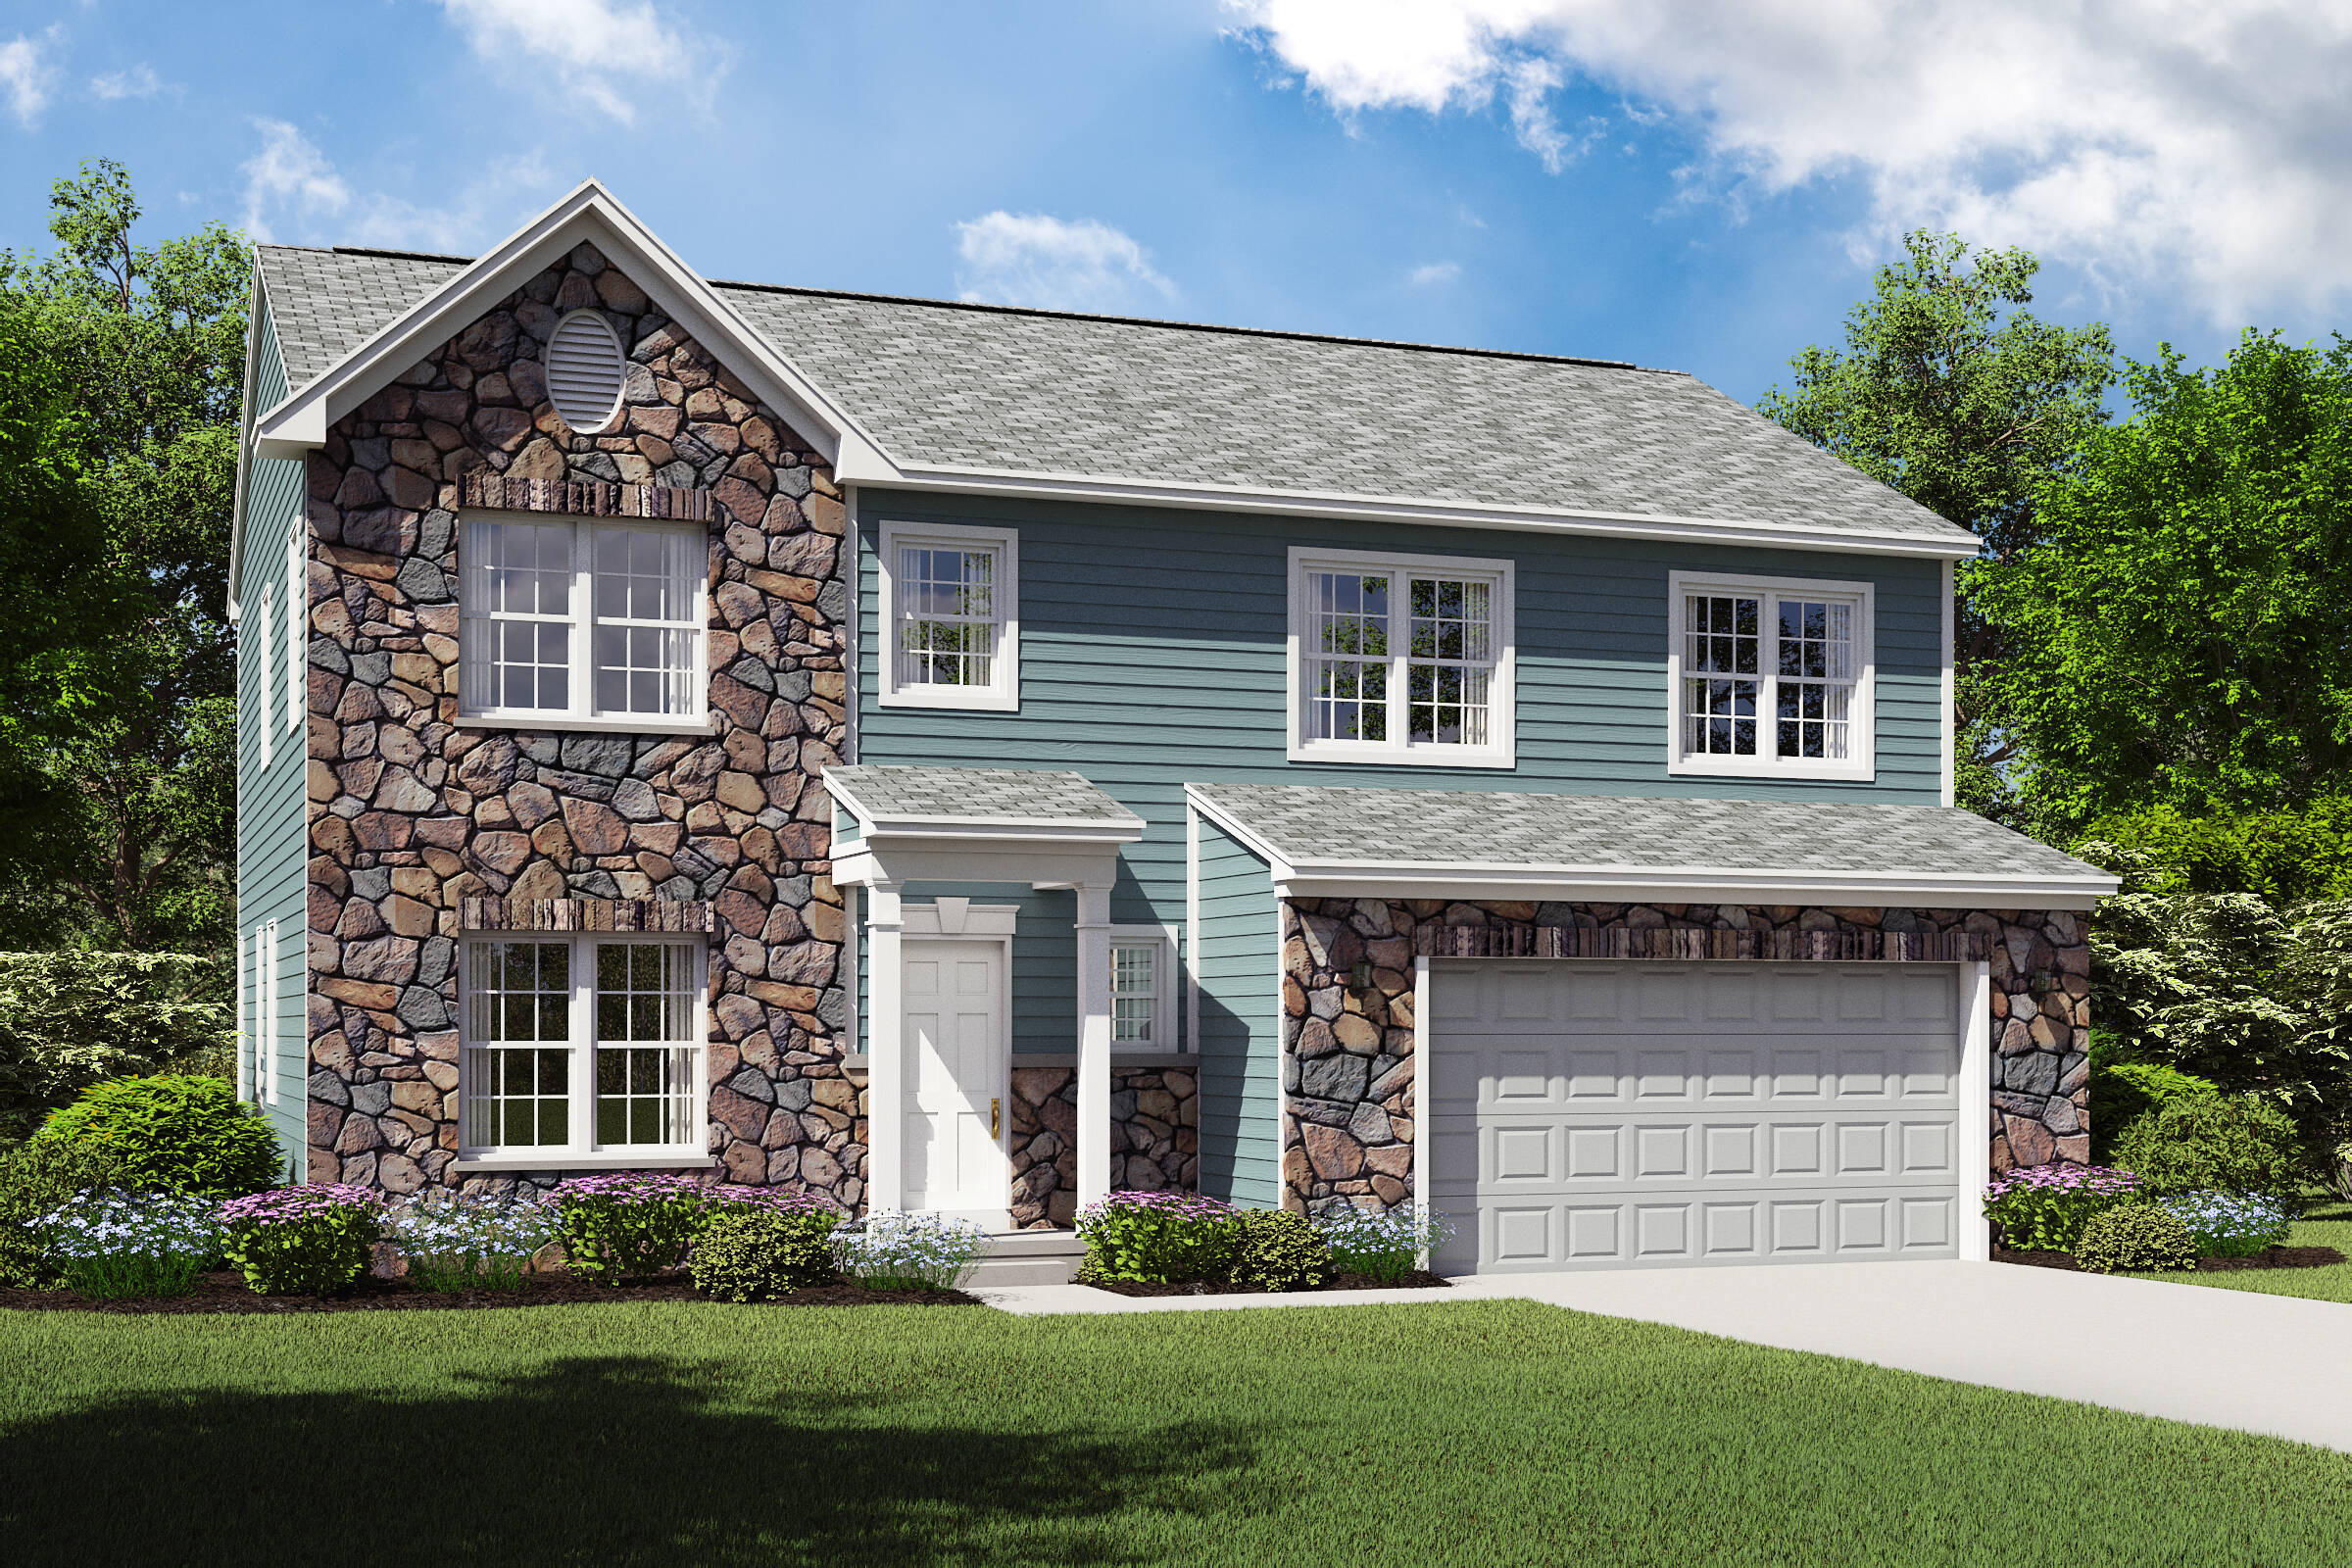 anderson bt homes for sale cleveland